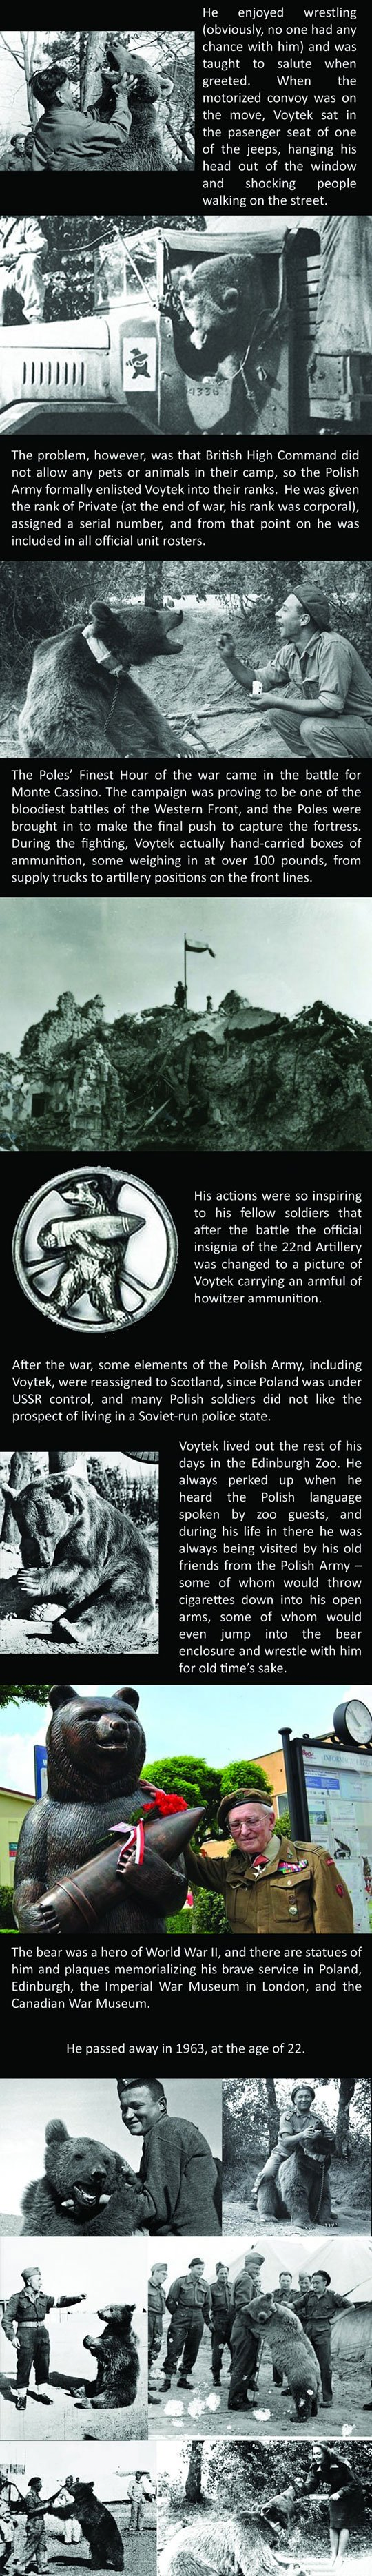 woytek_the_soldier_bear_2